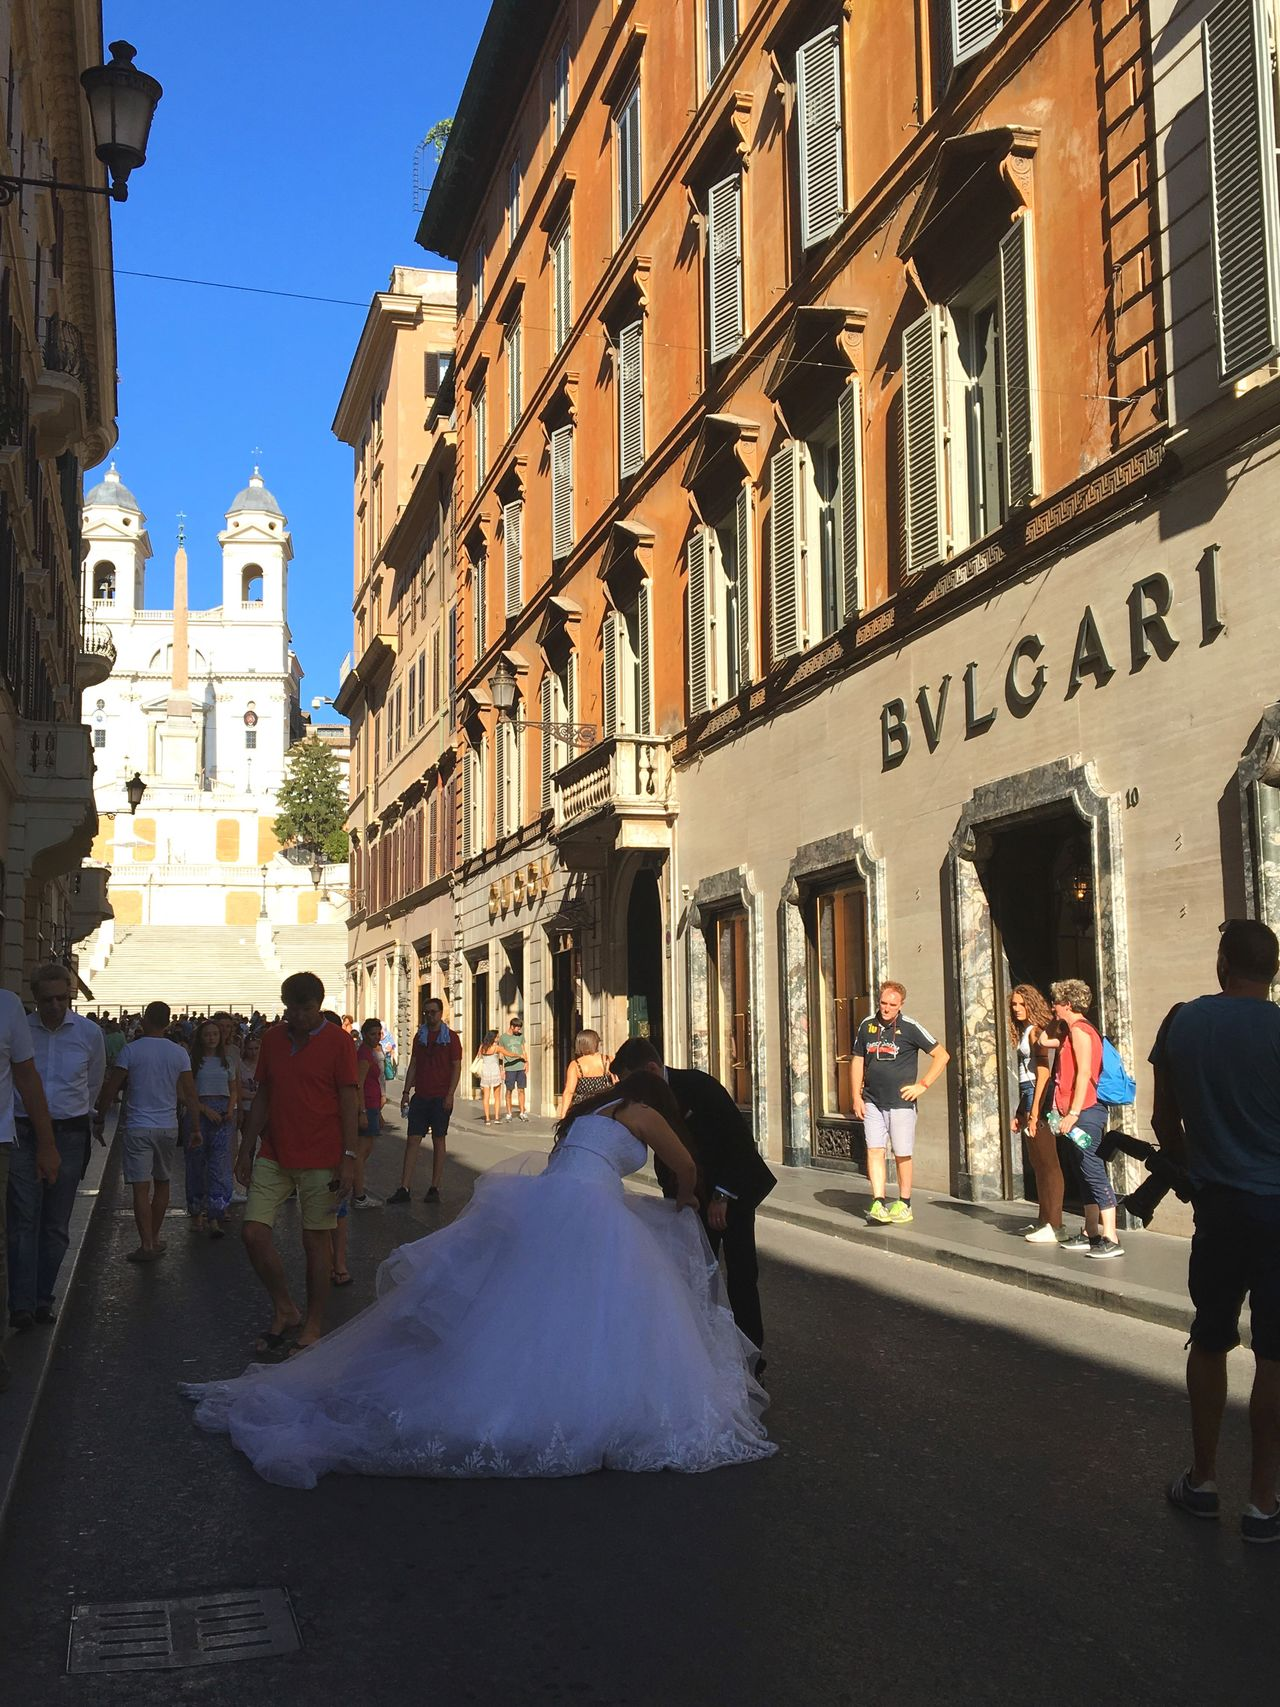 City Life Rome Via Condotti Bvlgari TrinitàdeiMonti Piazza Di Spagna Wedding Wedding Photography Weddings Around The World Bride